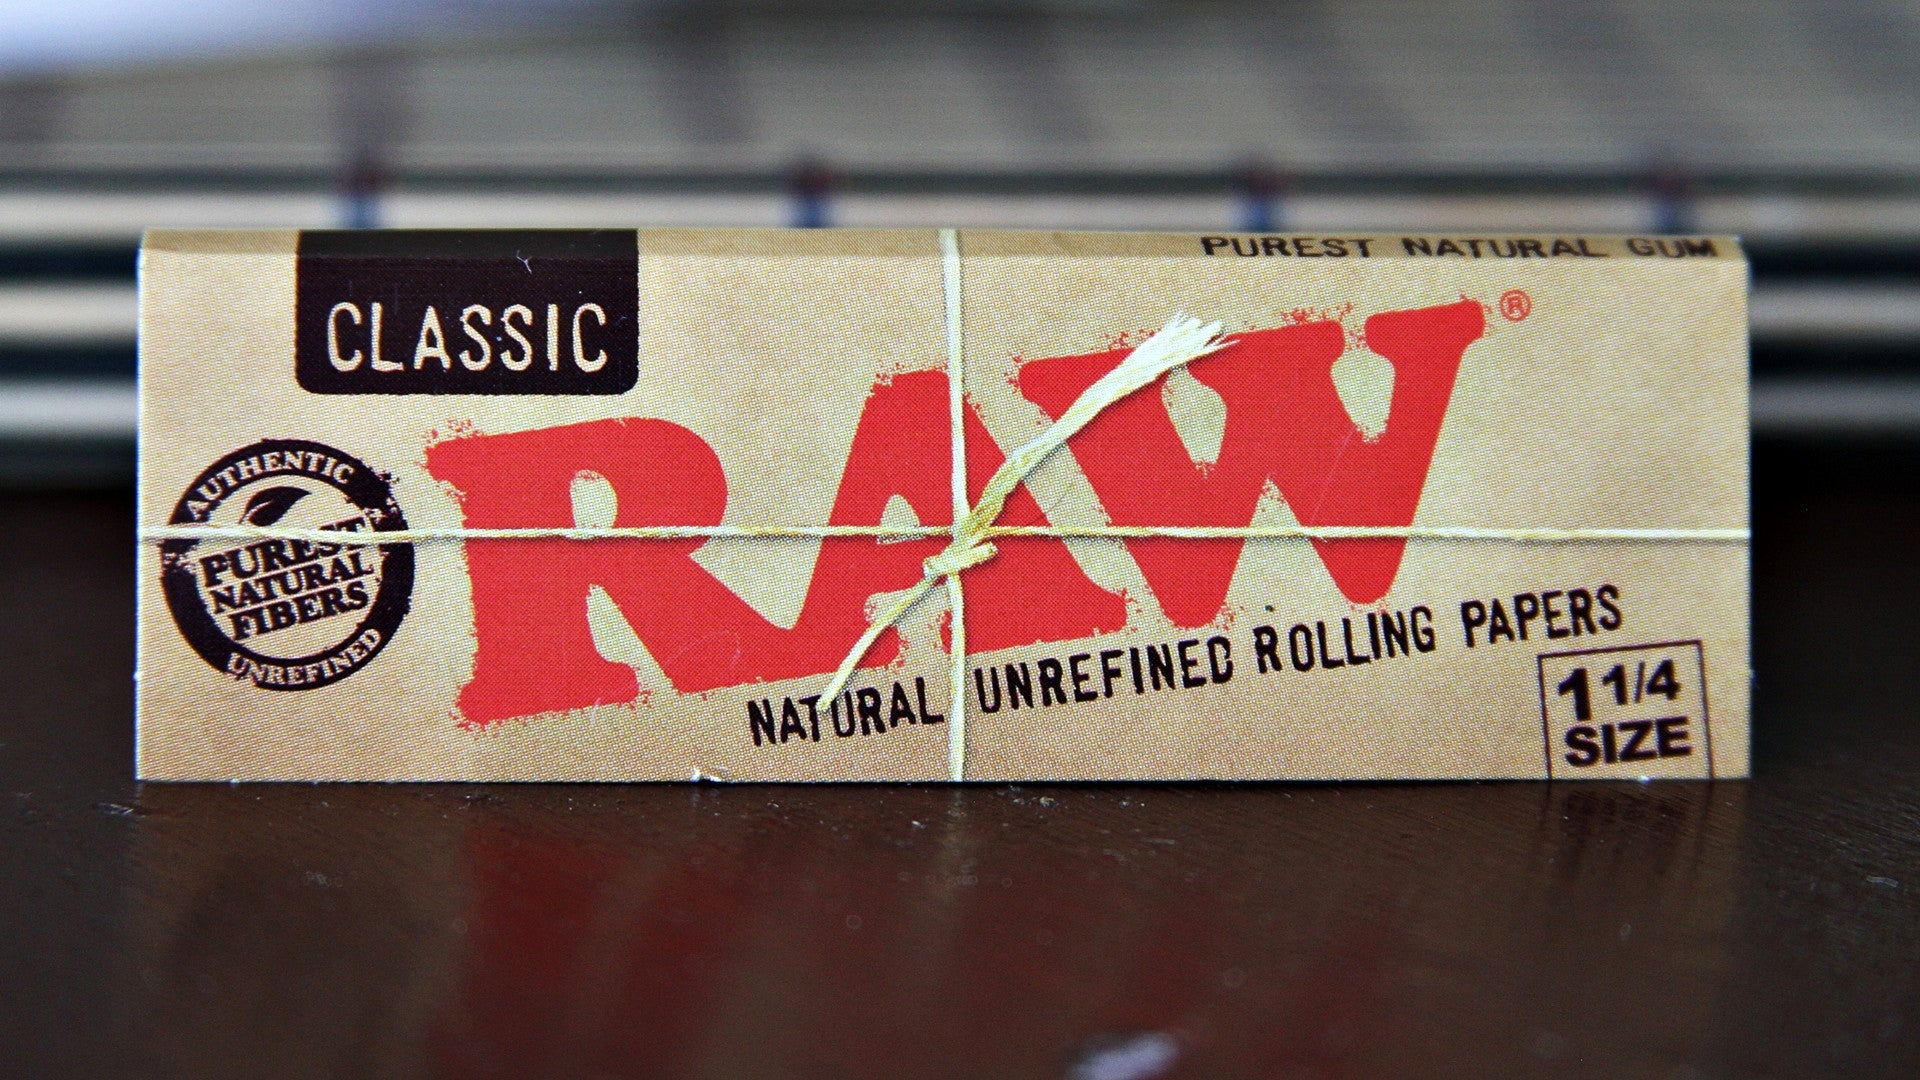 "1 1/4"" Size Rolling Papers - 50 Leaves"